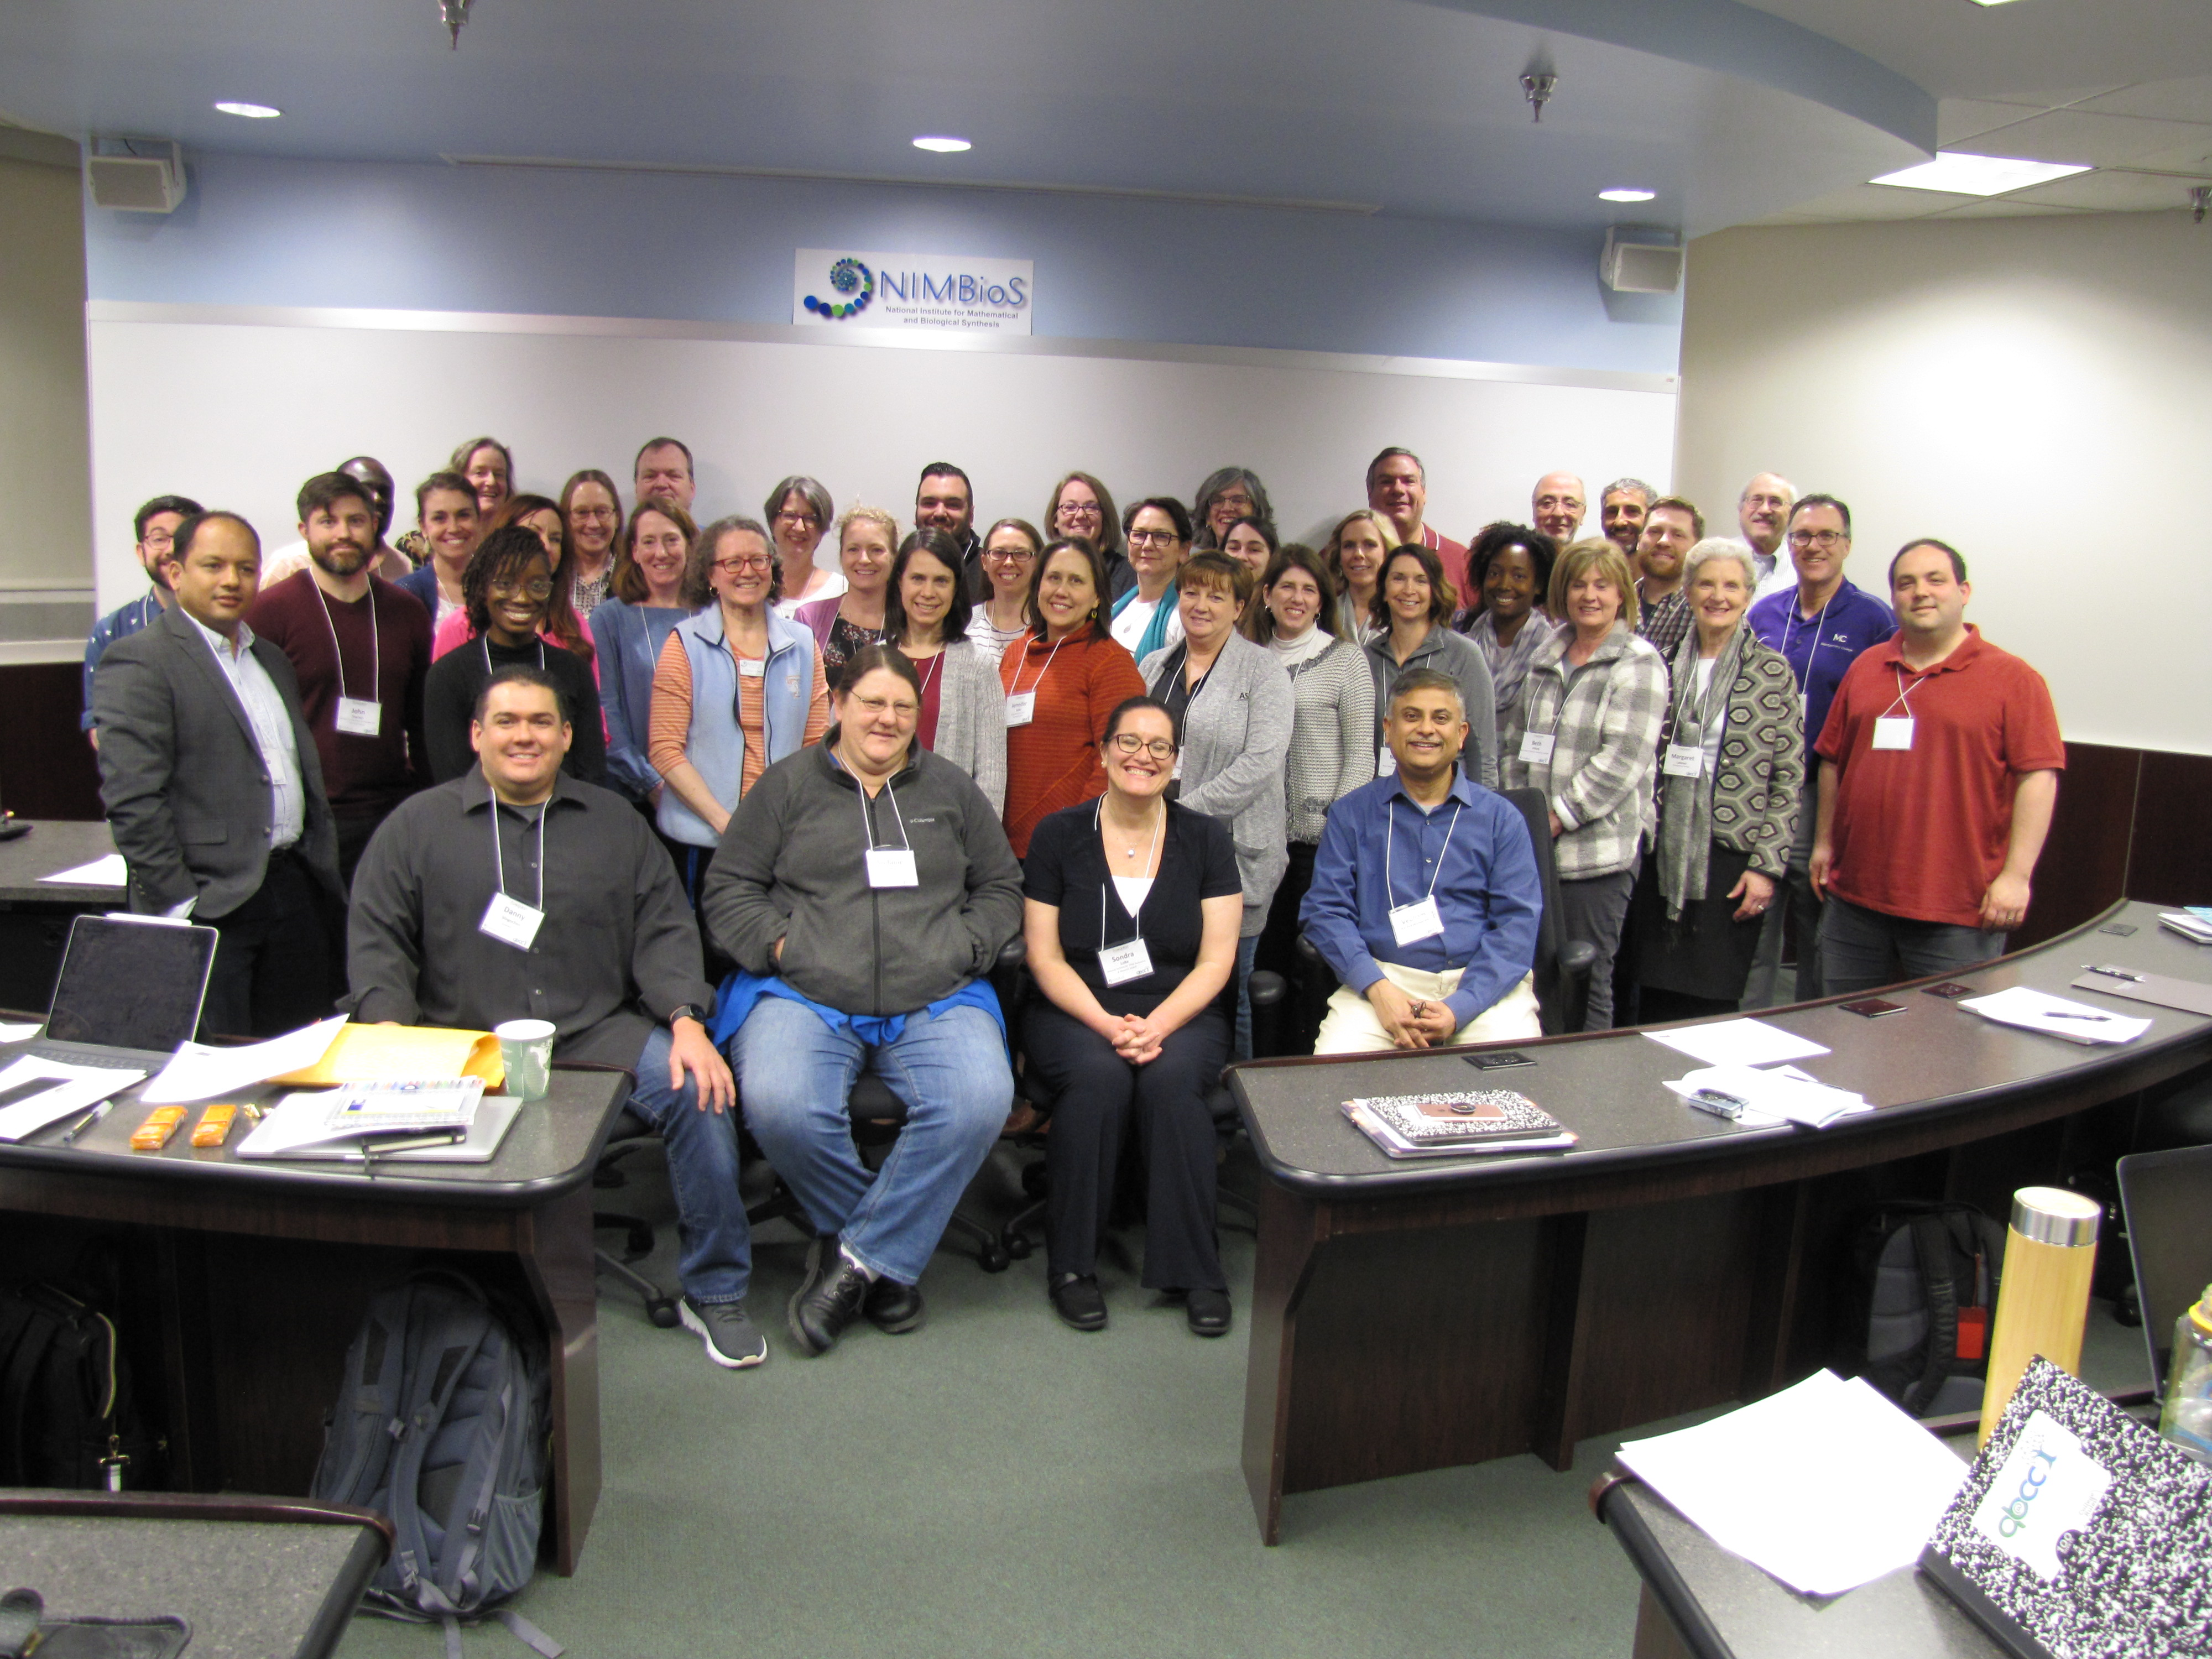 group photo of qb@cc attendees